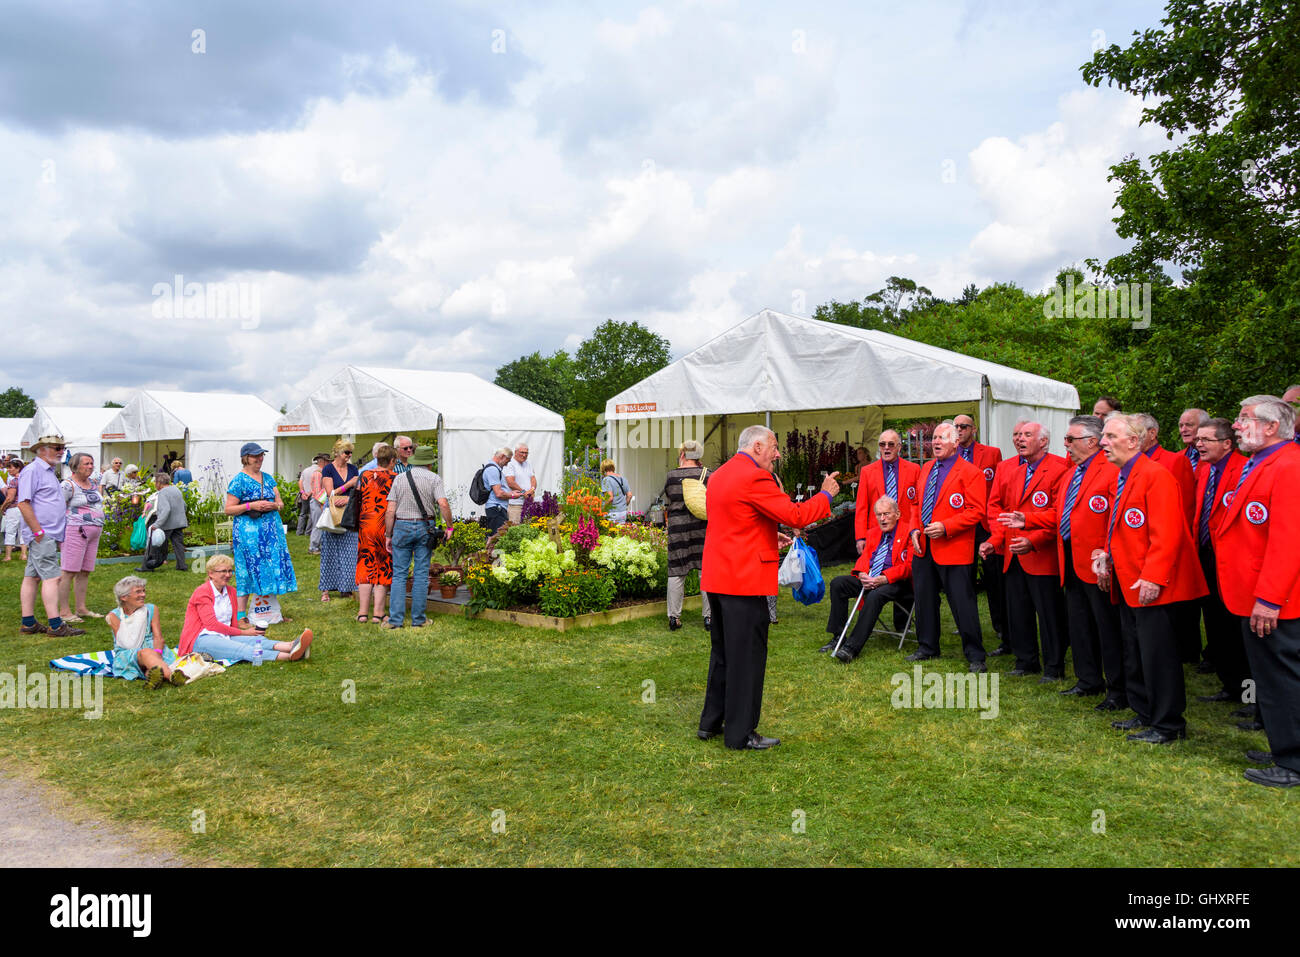 The Essex Chordsmen entertaining flower show visitors. - Stock Image